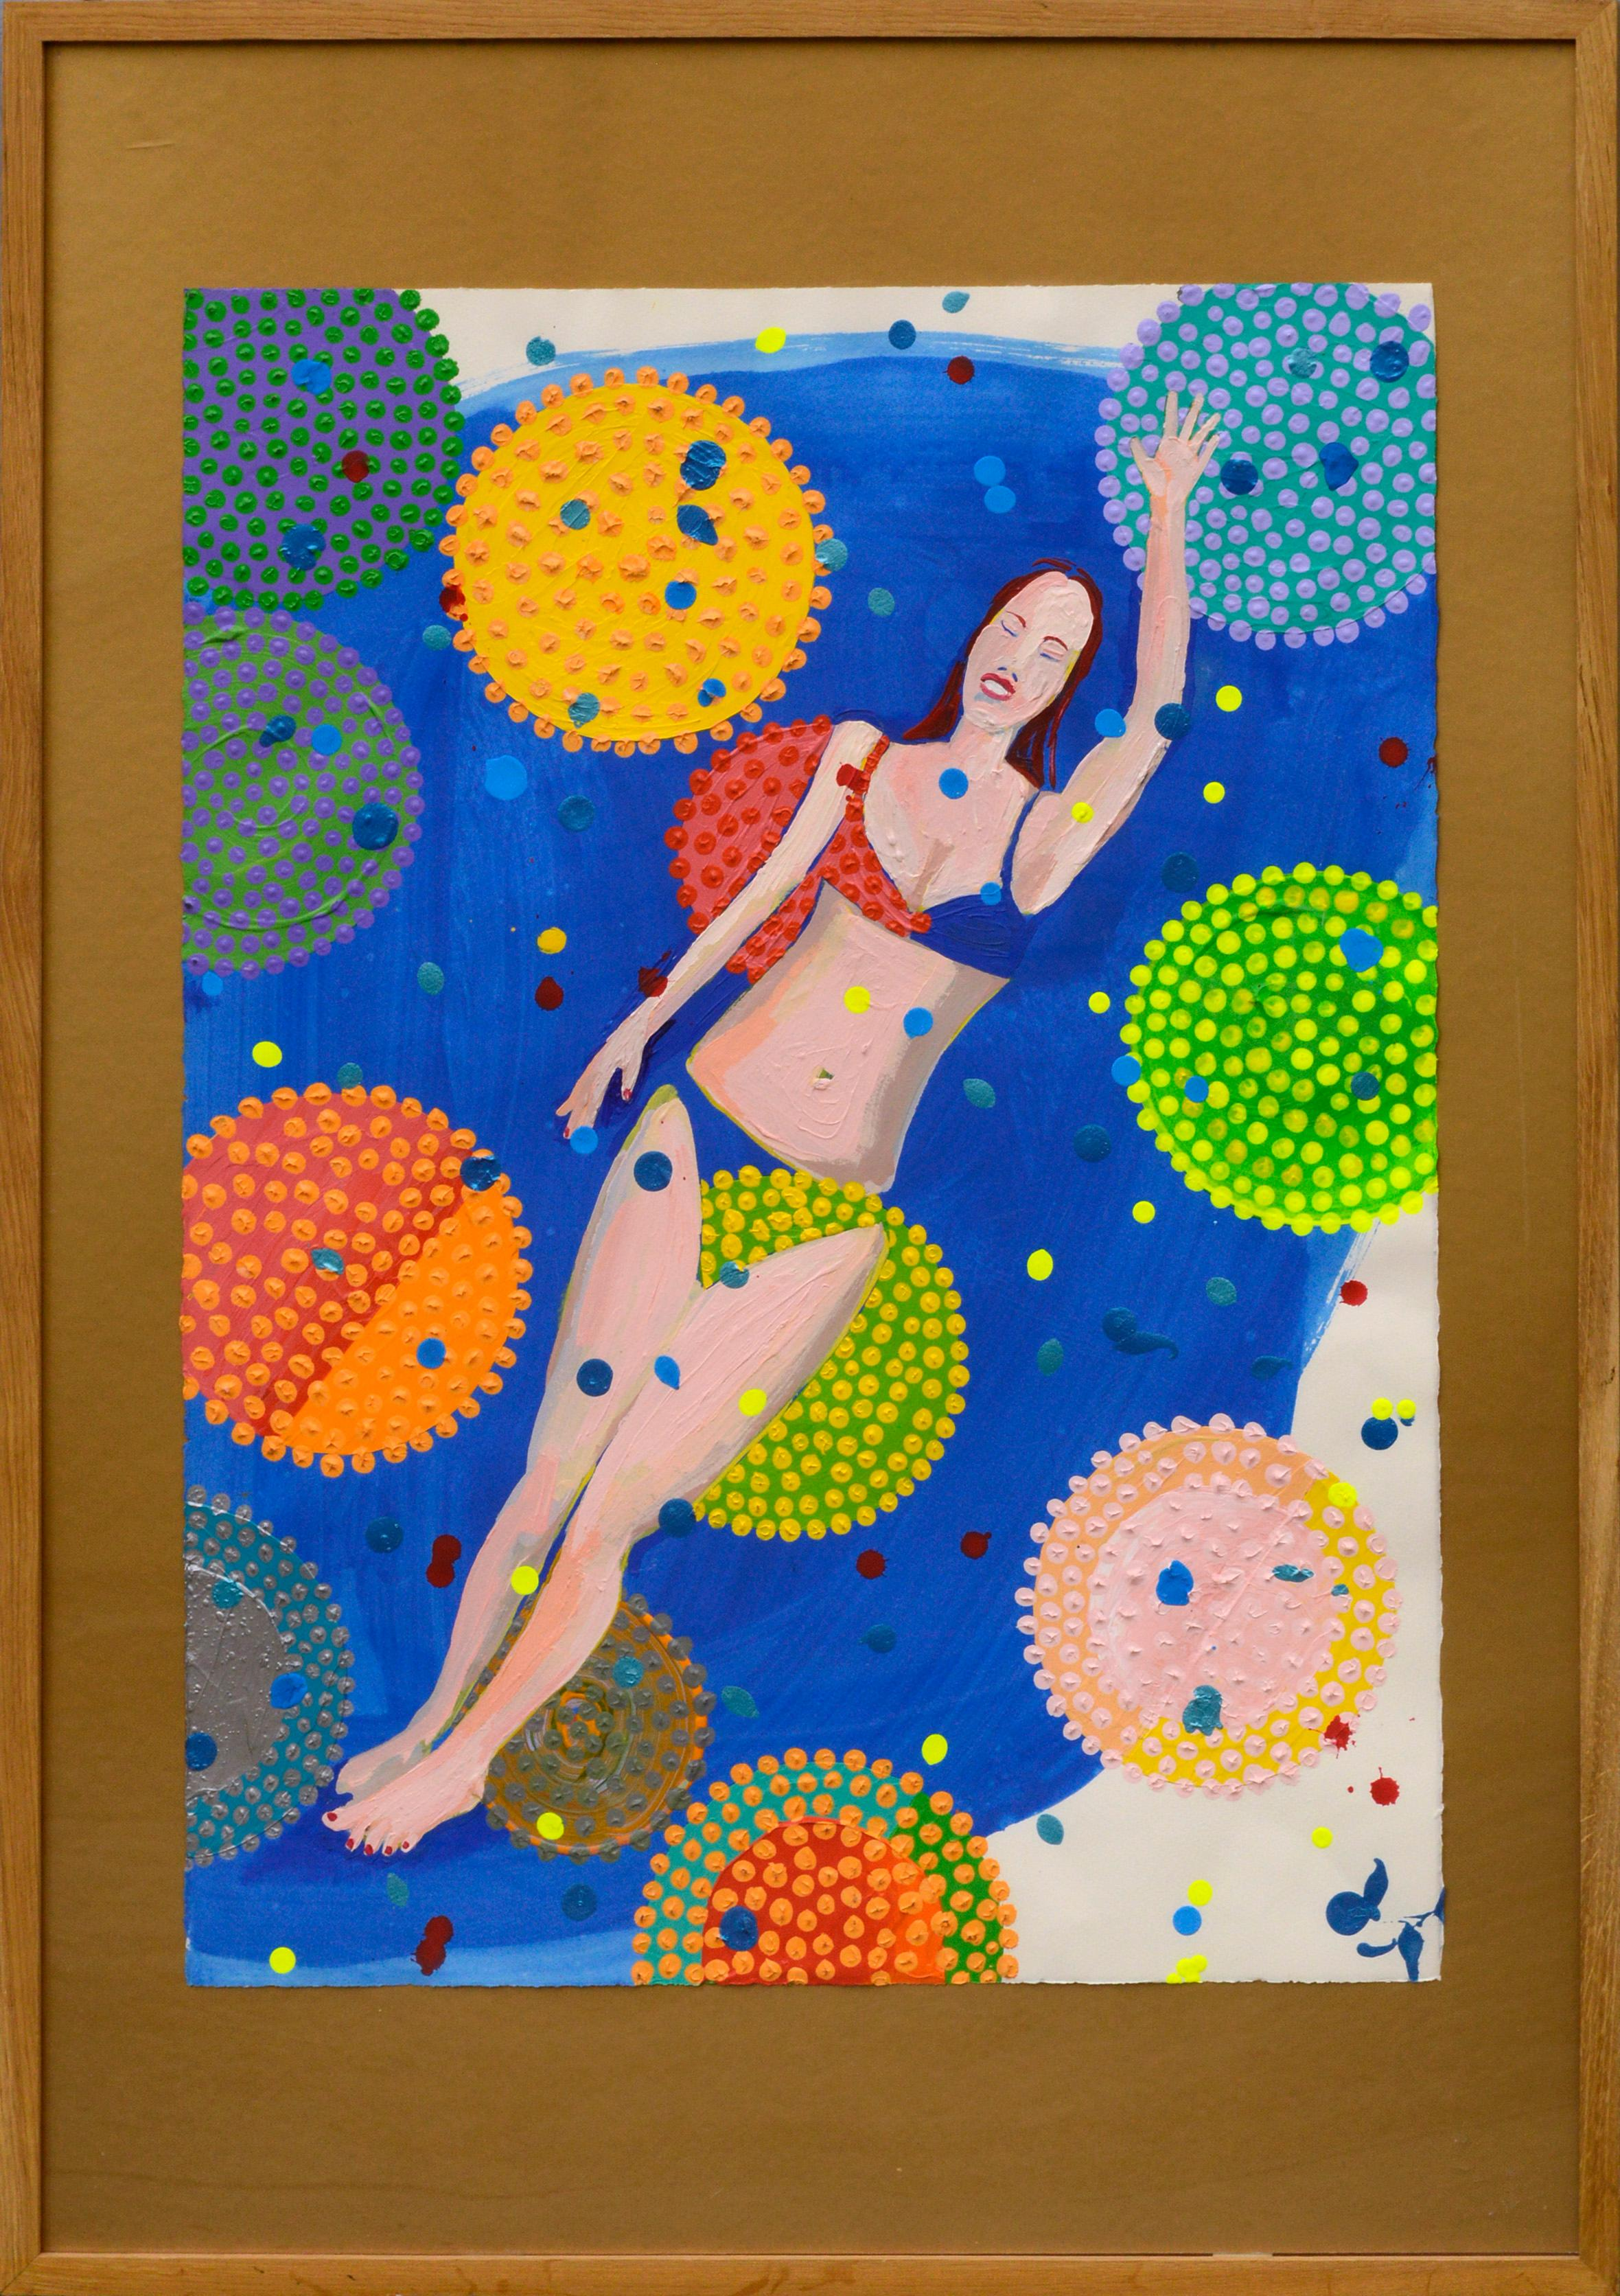 Bather Abstract